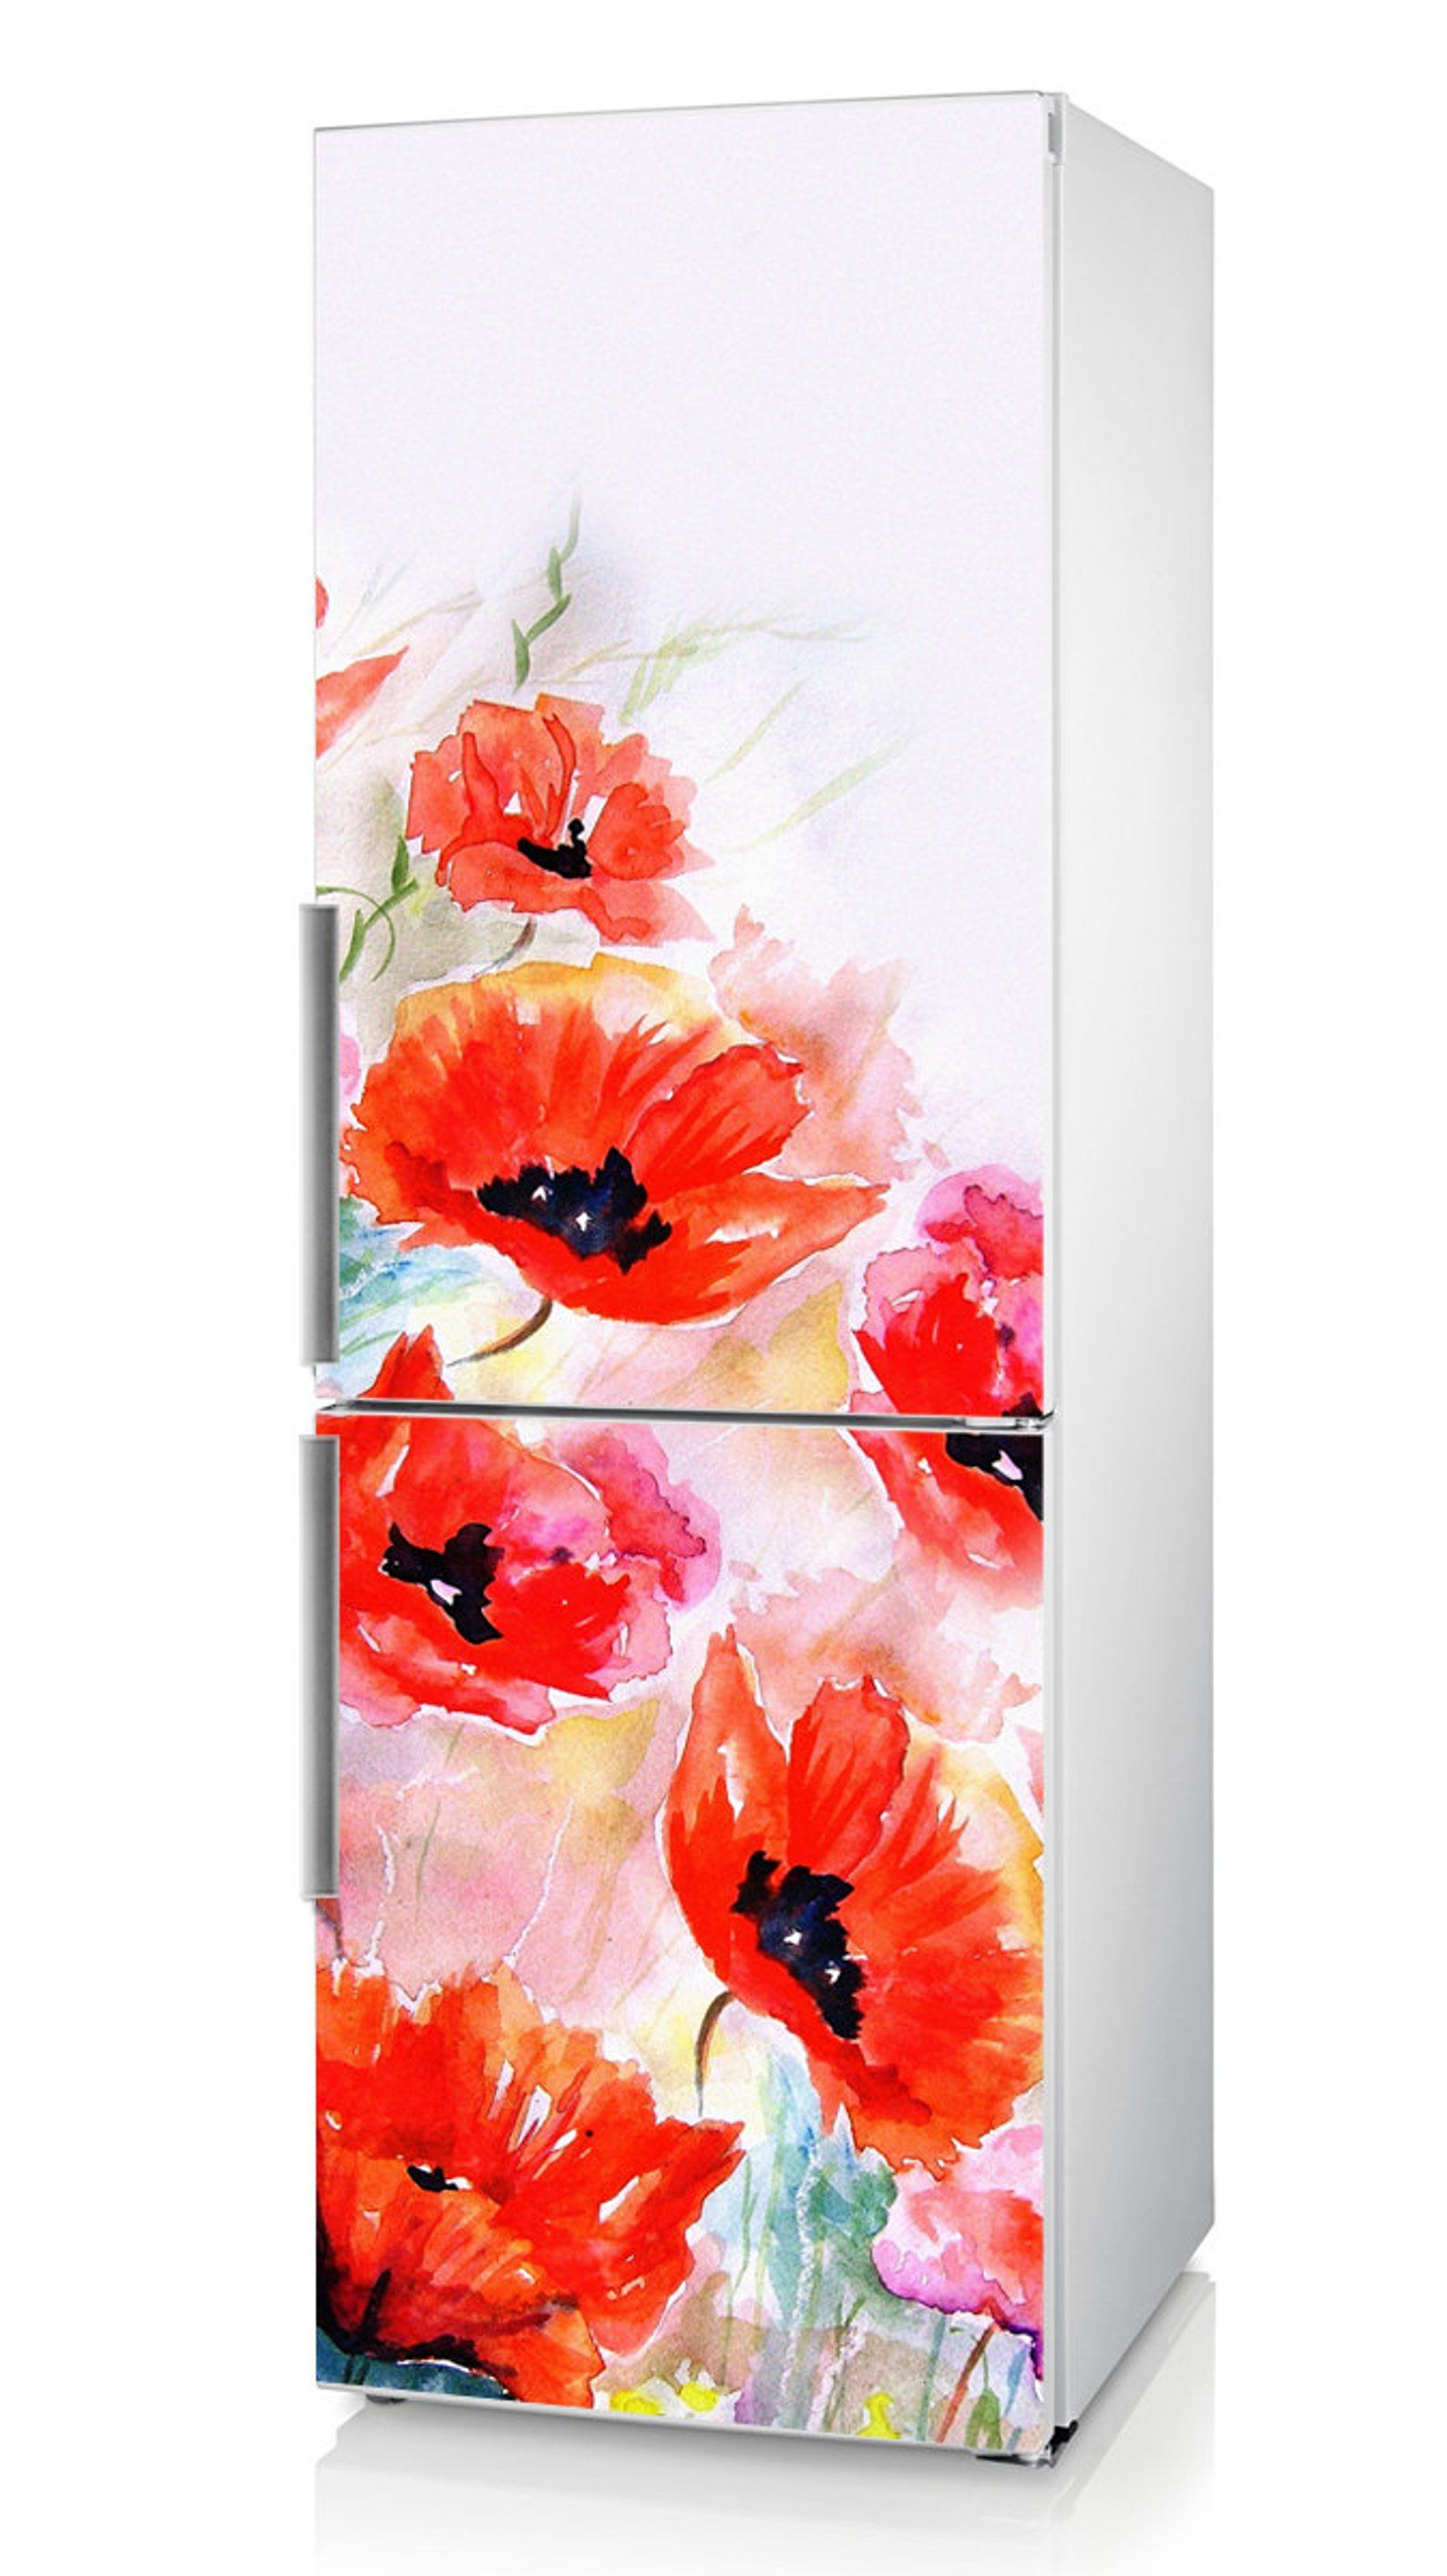 Fridge Vinyl Sticker Red Poppies And Tulips Self Adhesive